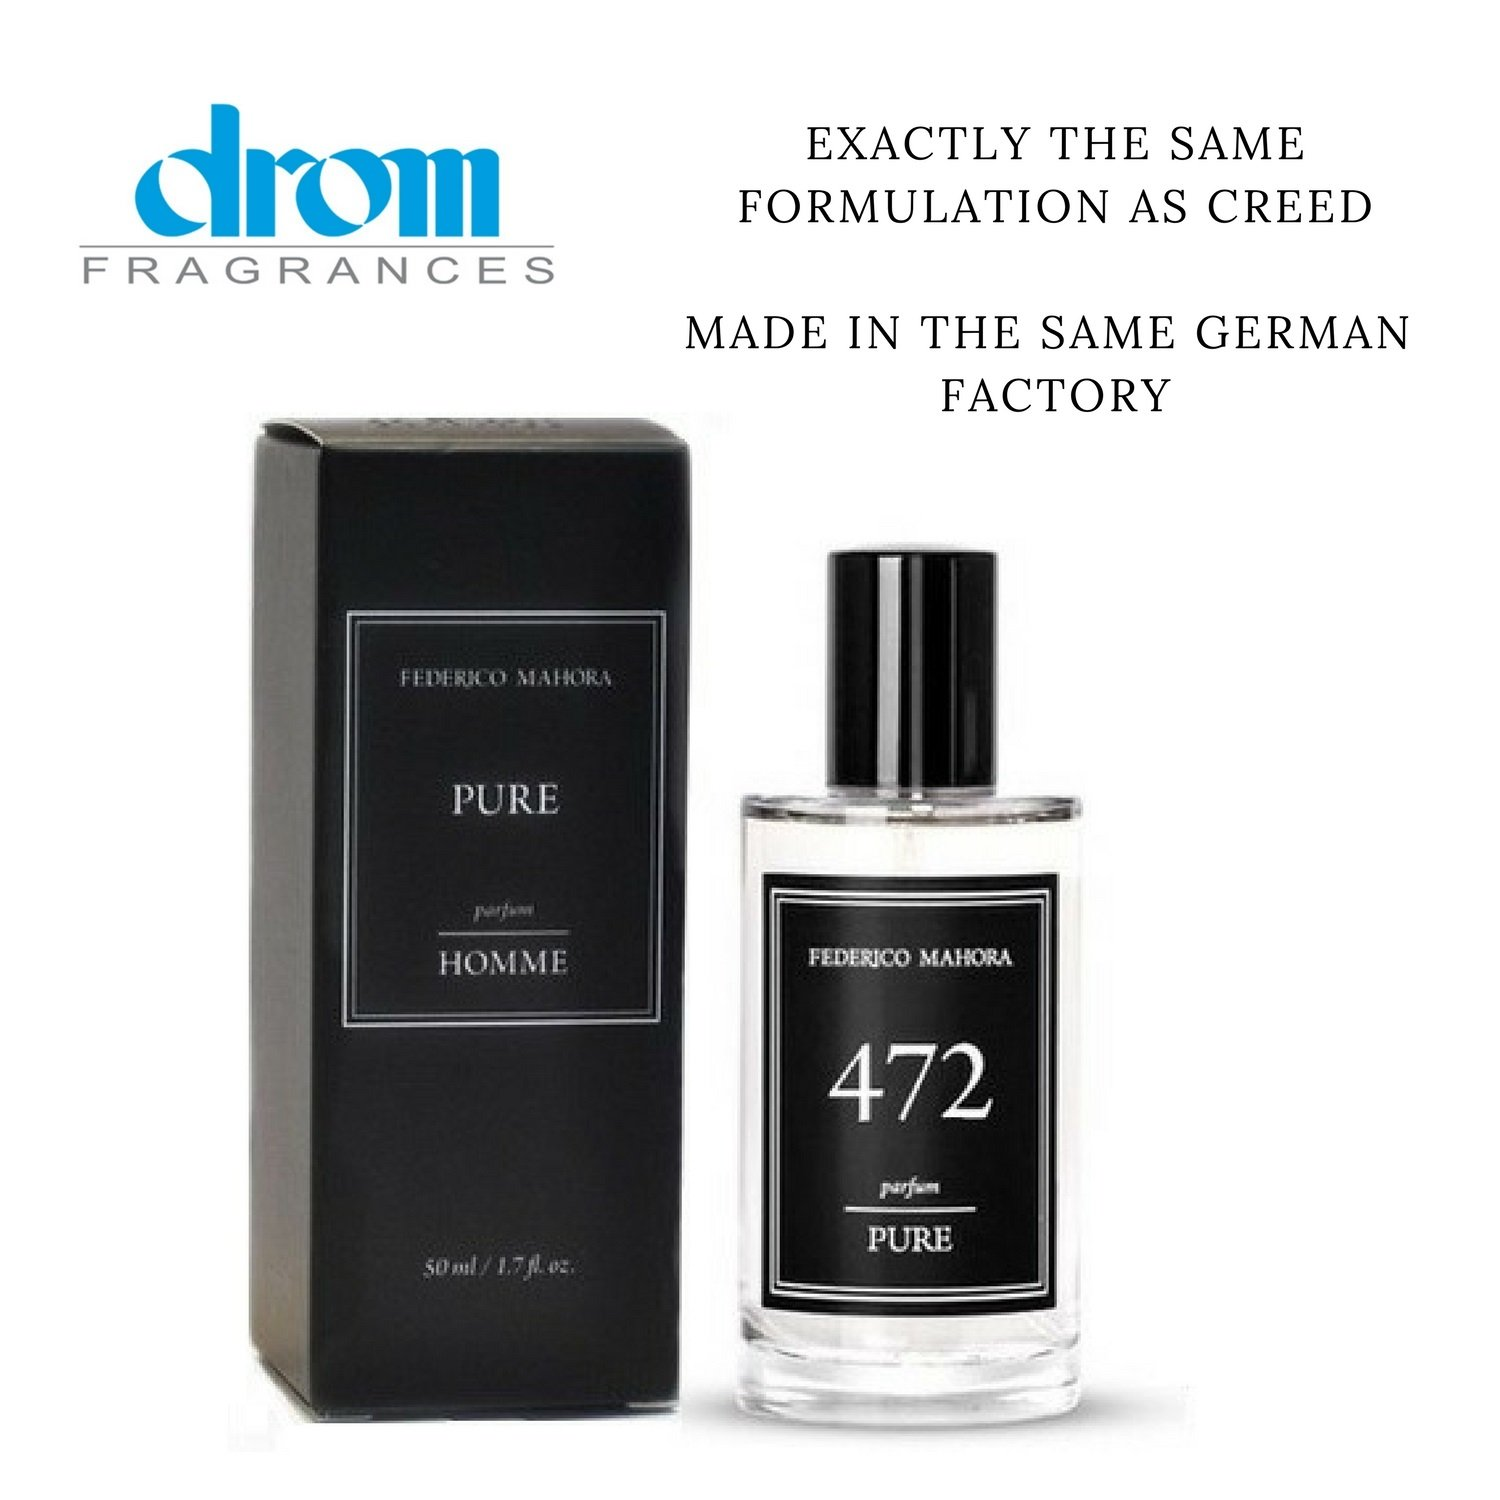 Pure 472 Eau De Parfum Spray For Men. Same Formulation as Creed! Made In The Same German Factory by Drom Fragrances. Eau De Parfum (50ml).